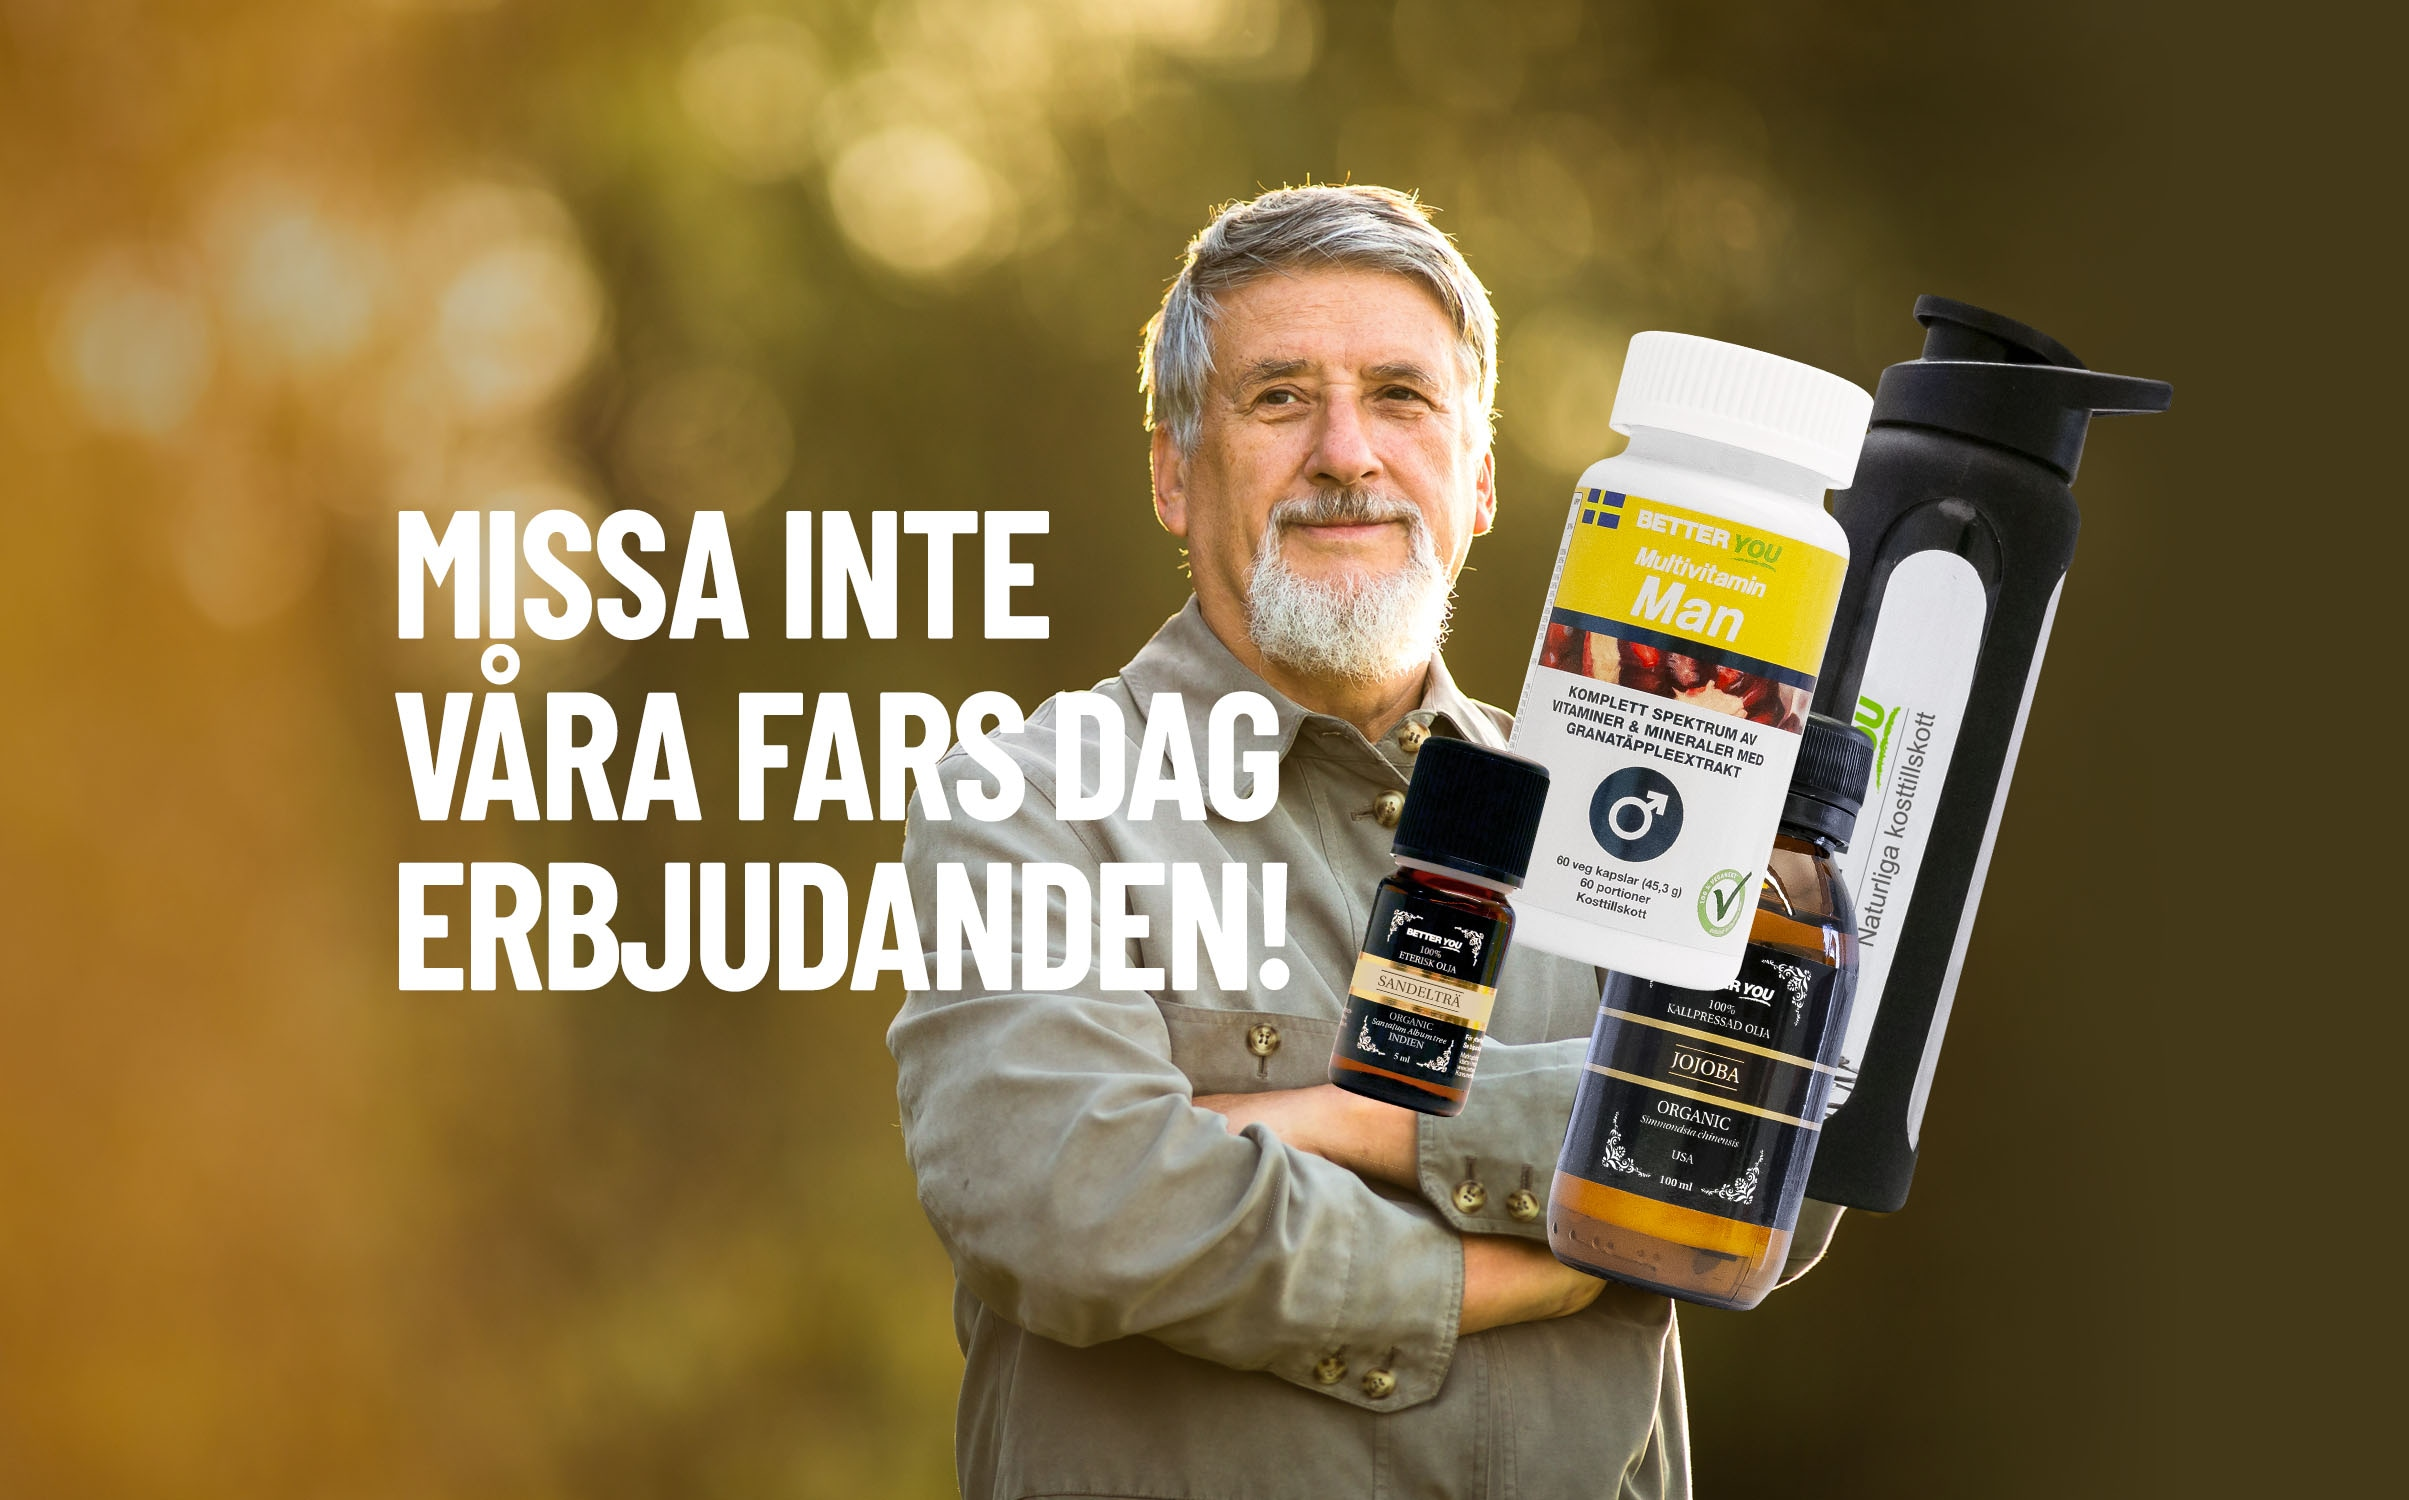 https://www.betteryou.se/pub_docs/files/Custom_Item_Images/Stora_snurr_2_fars_dag.jpg